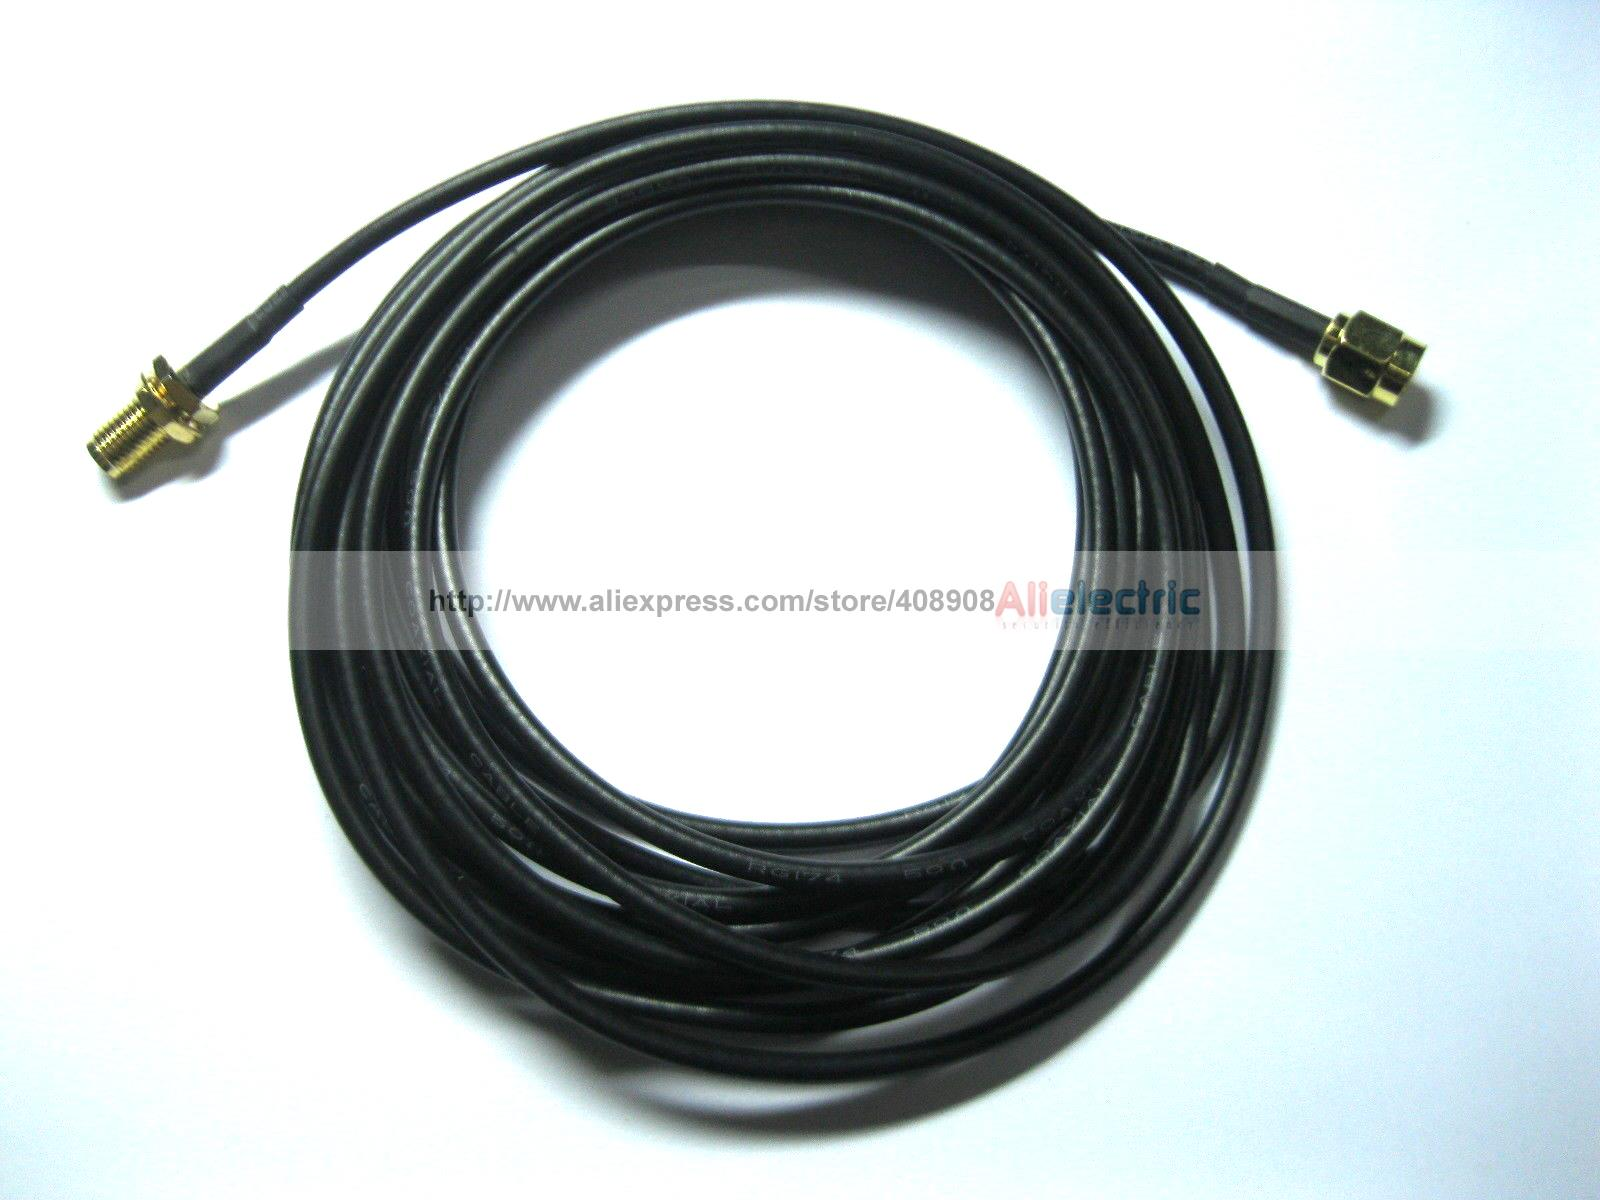 2 Pcs 6M Antenna RP SMA Coaxial Cable for WiFi Router Black 600cm стоимость